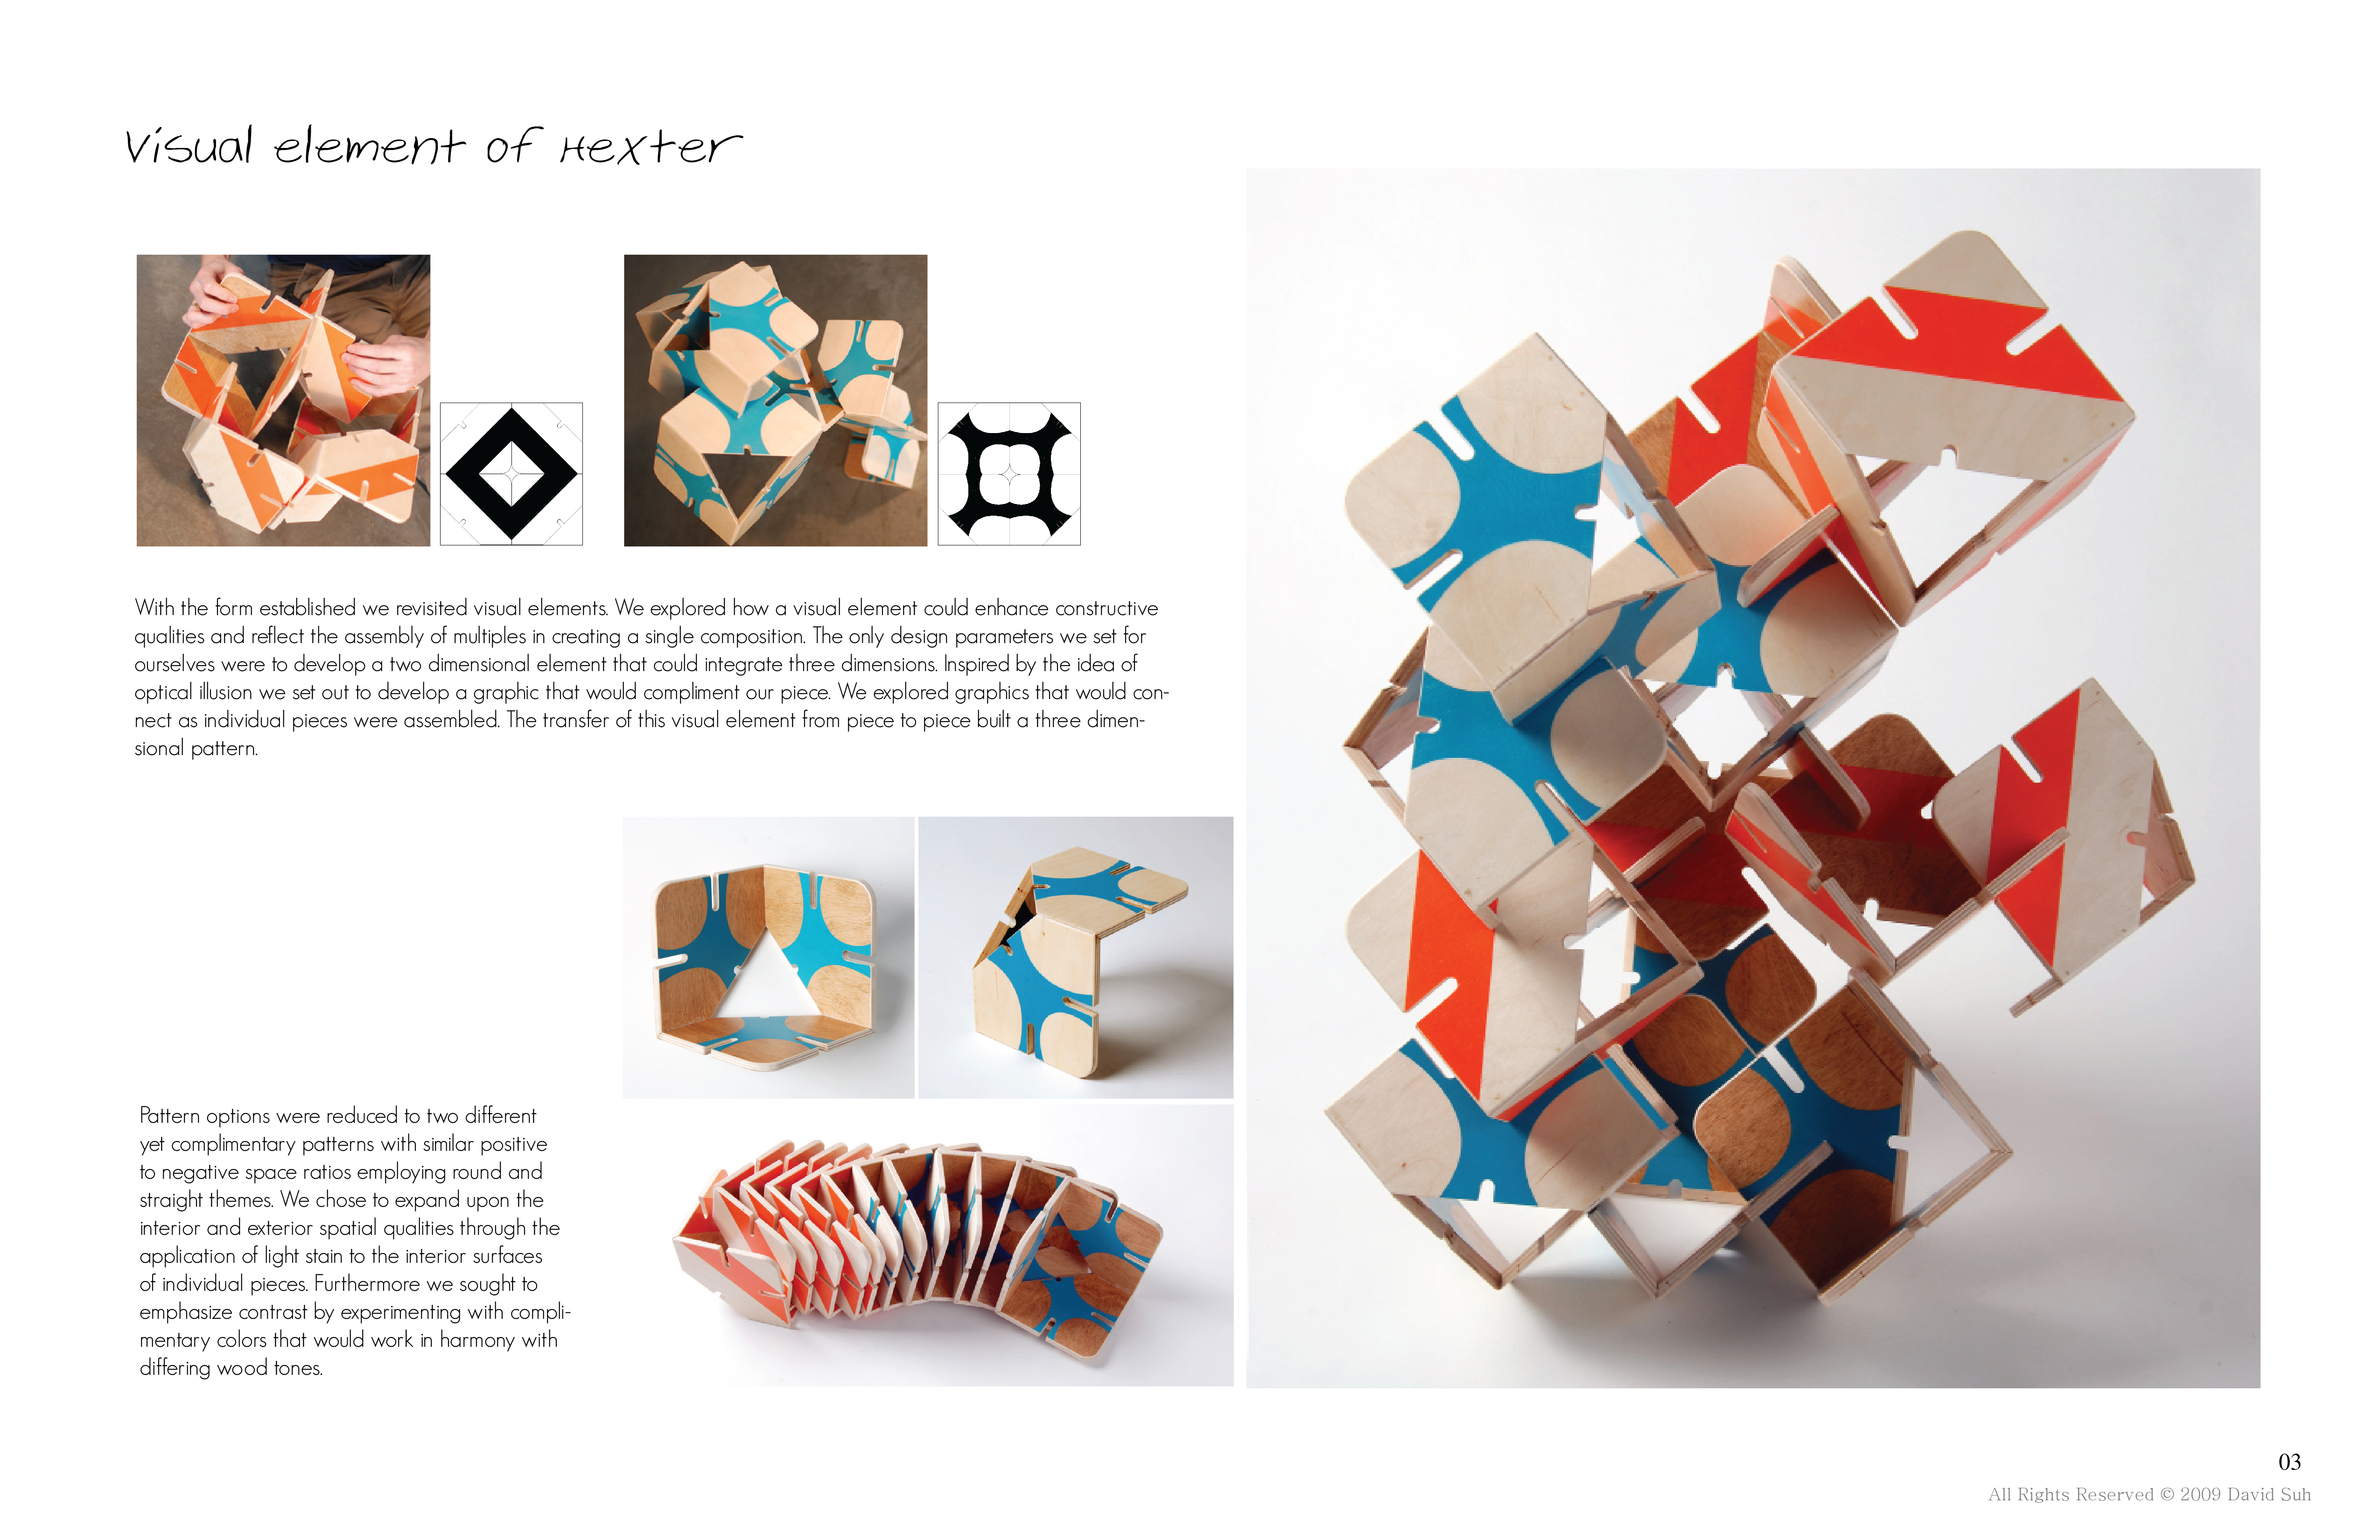 hexter a toy design for visual   spatial intelligence